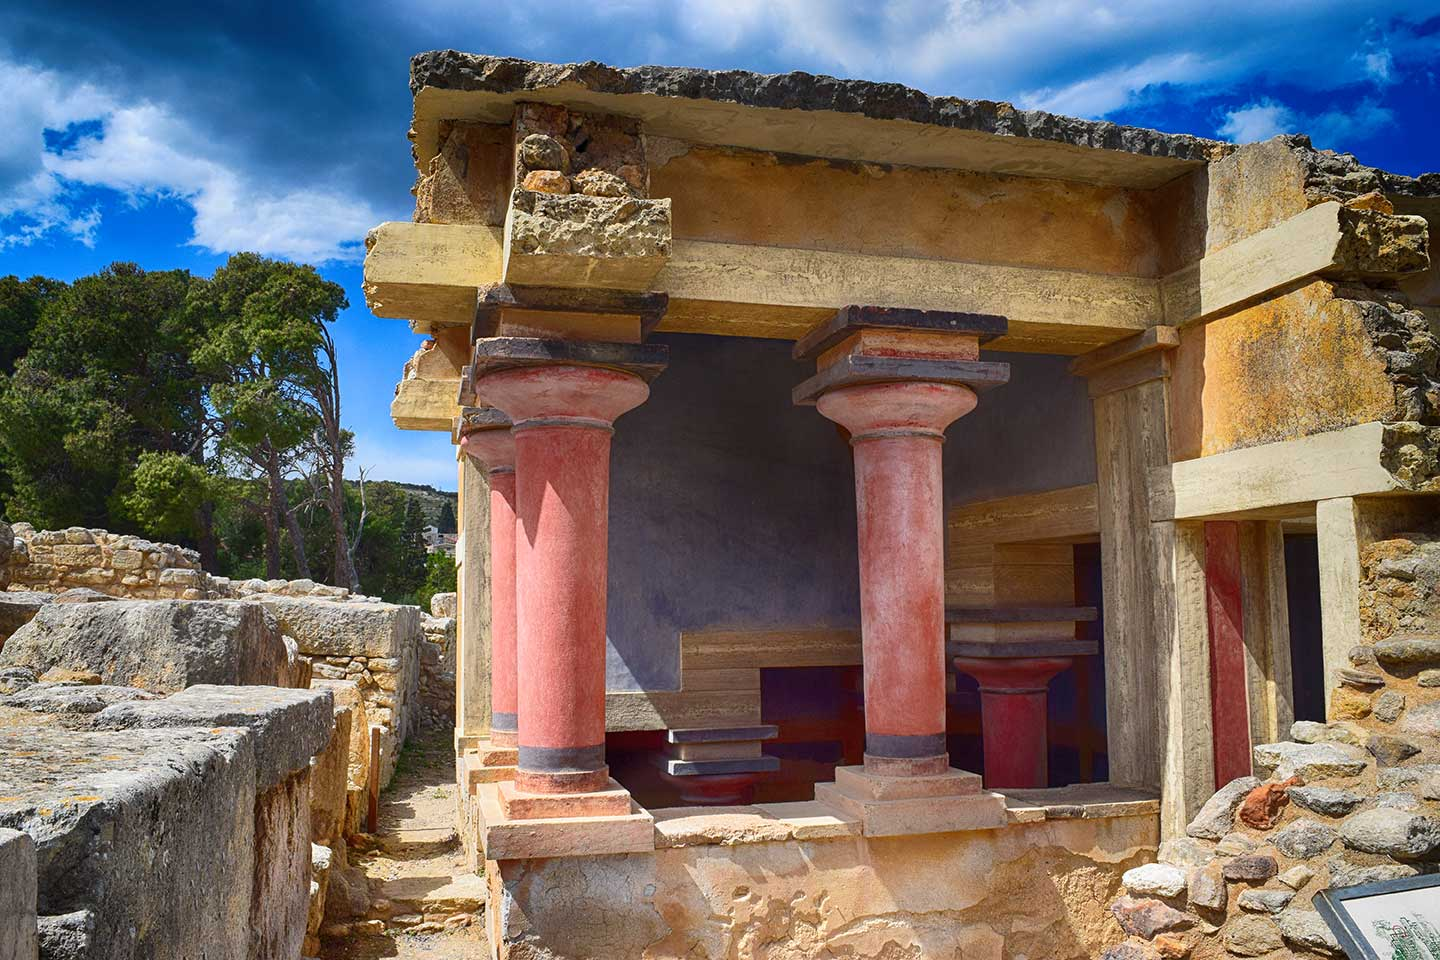 Post Lintel Construction in the remains of the Palace at Knossos